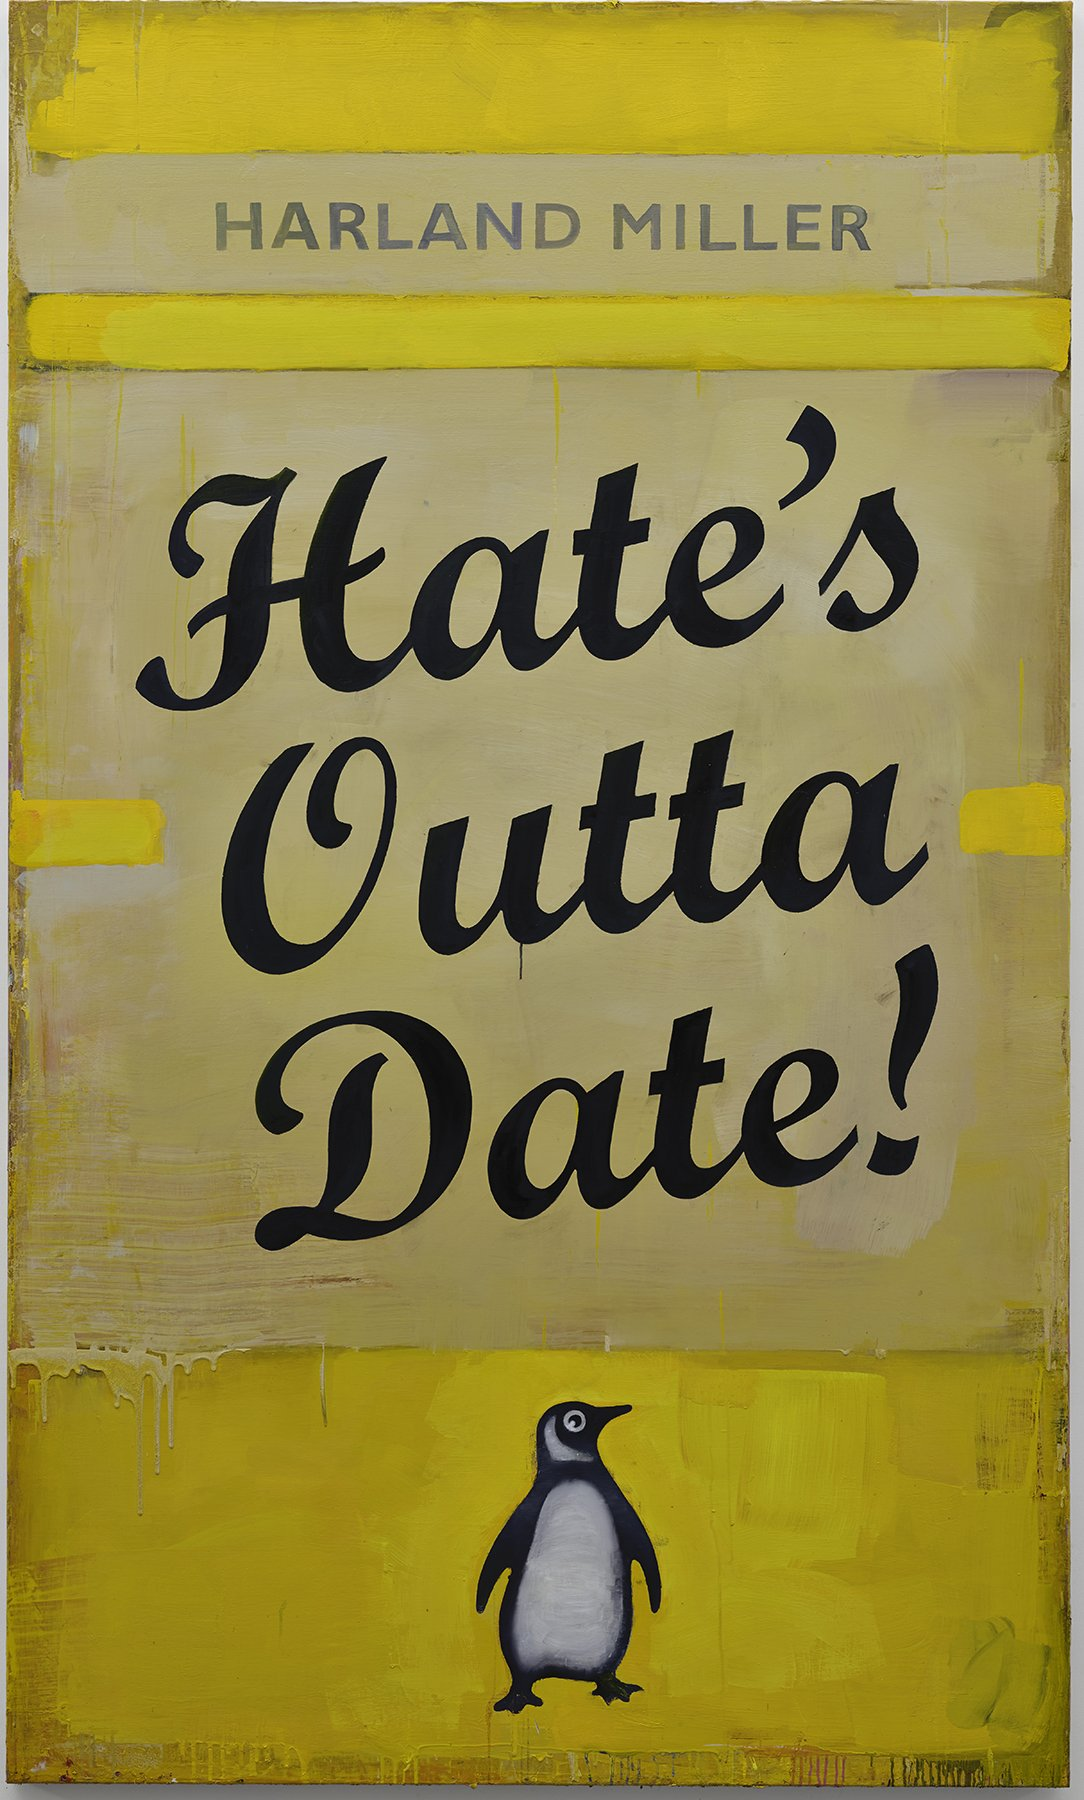 Harland Miler - Hates Outta Date!